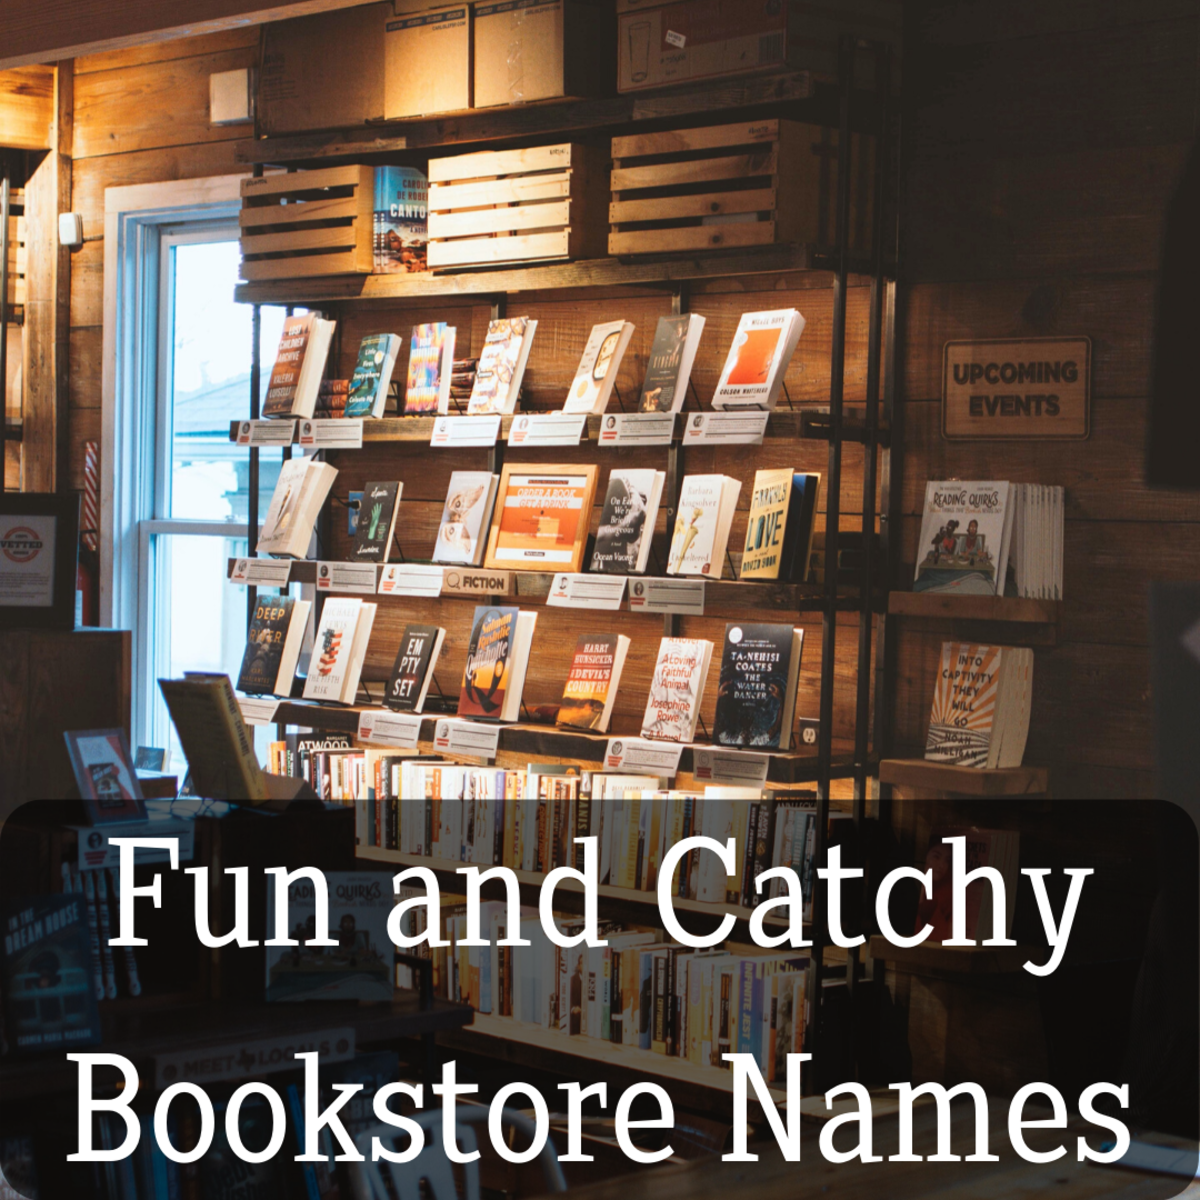 Having a cute and memorable name for your bookstore is a must!